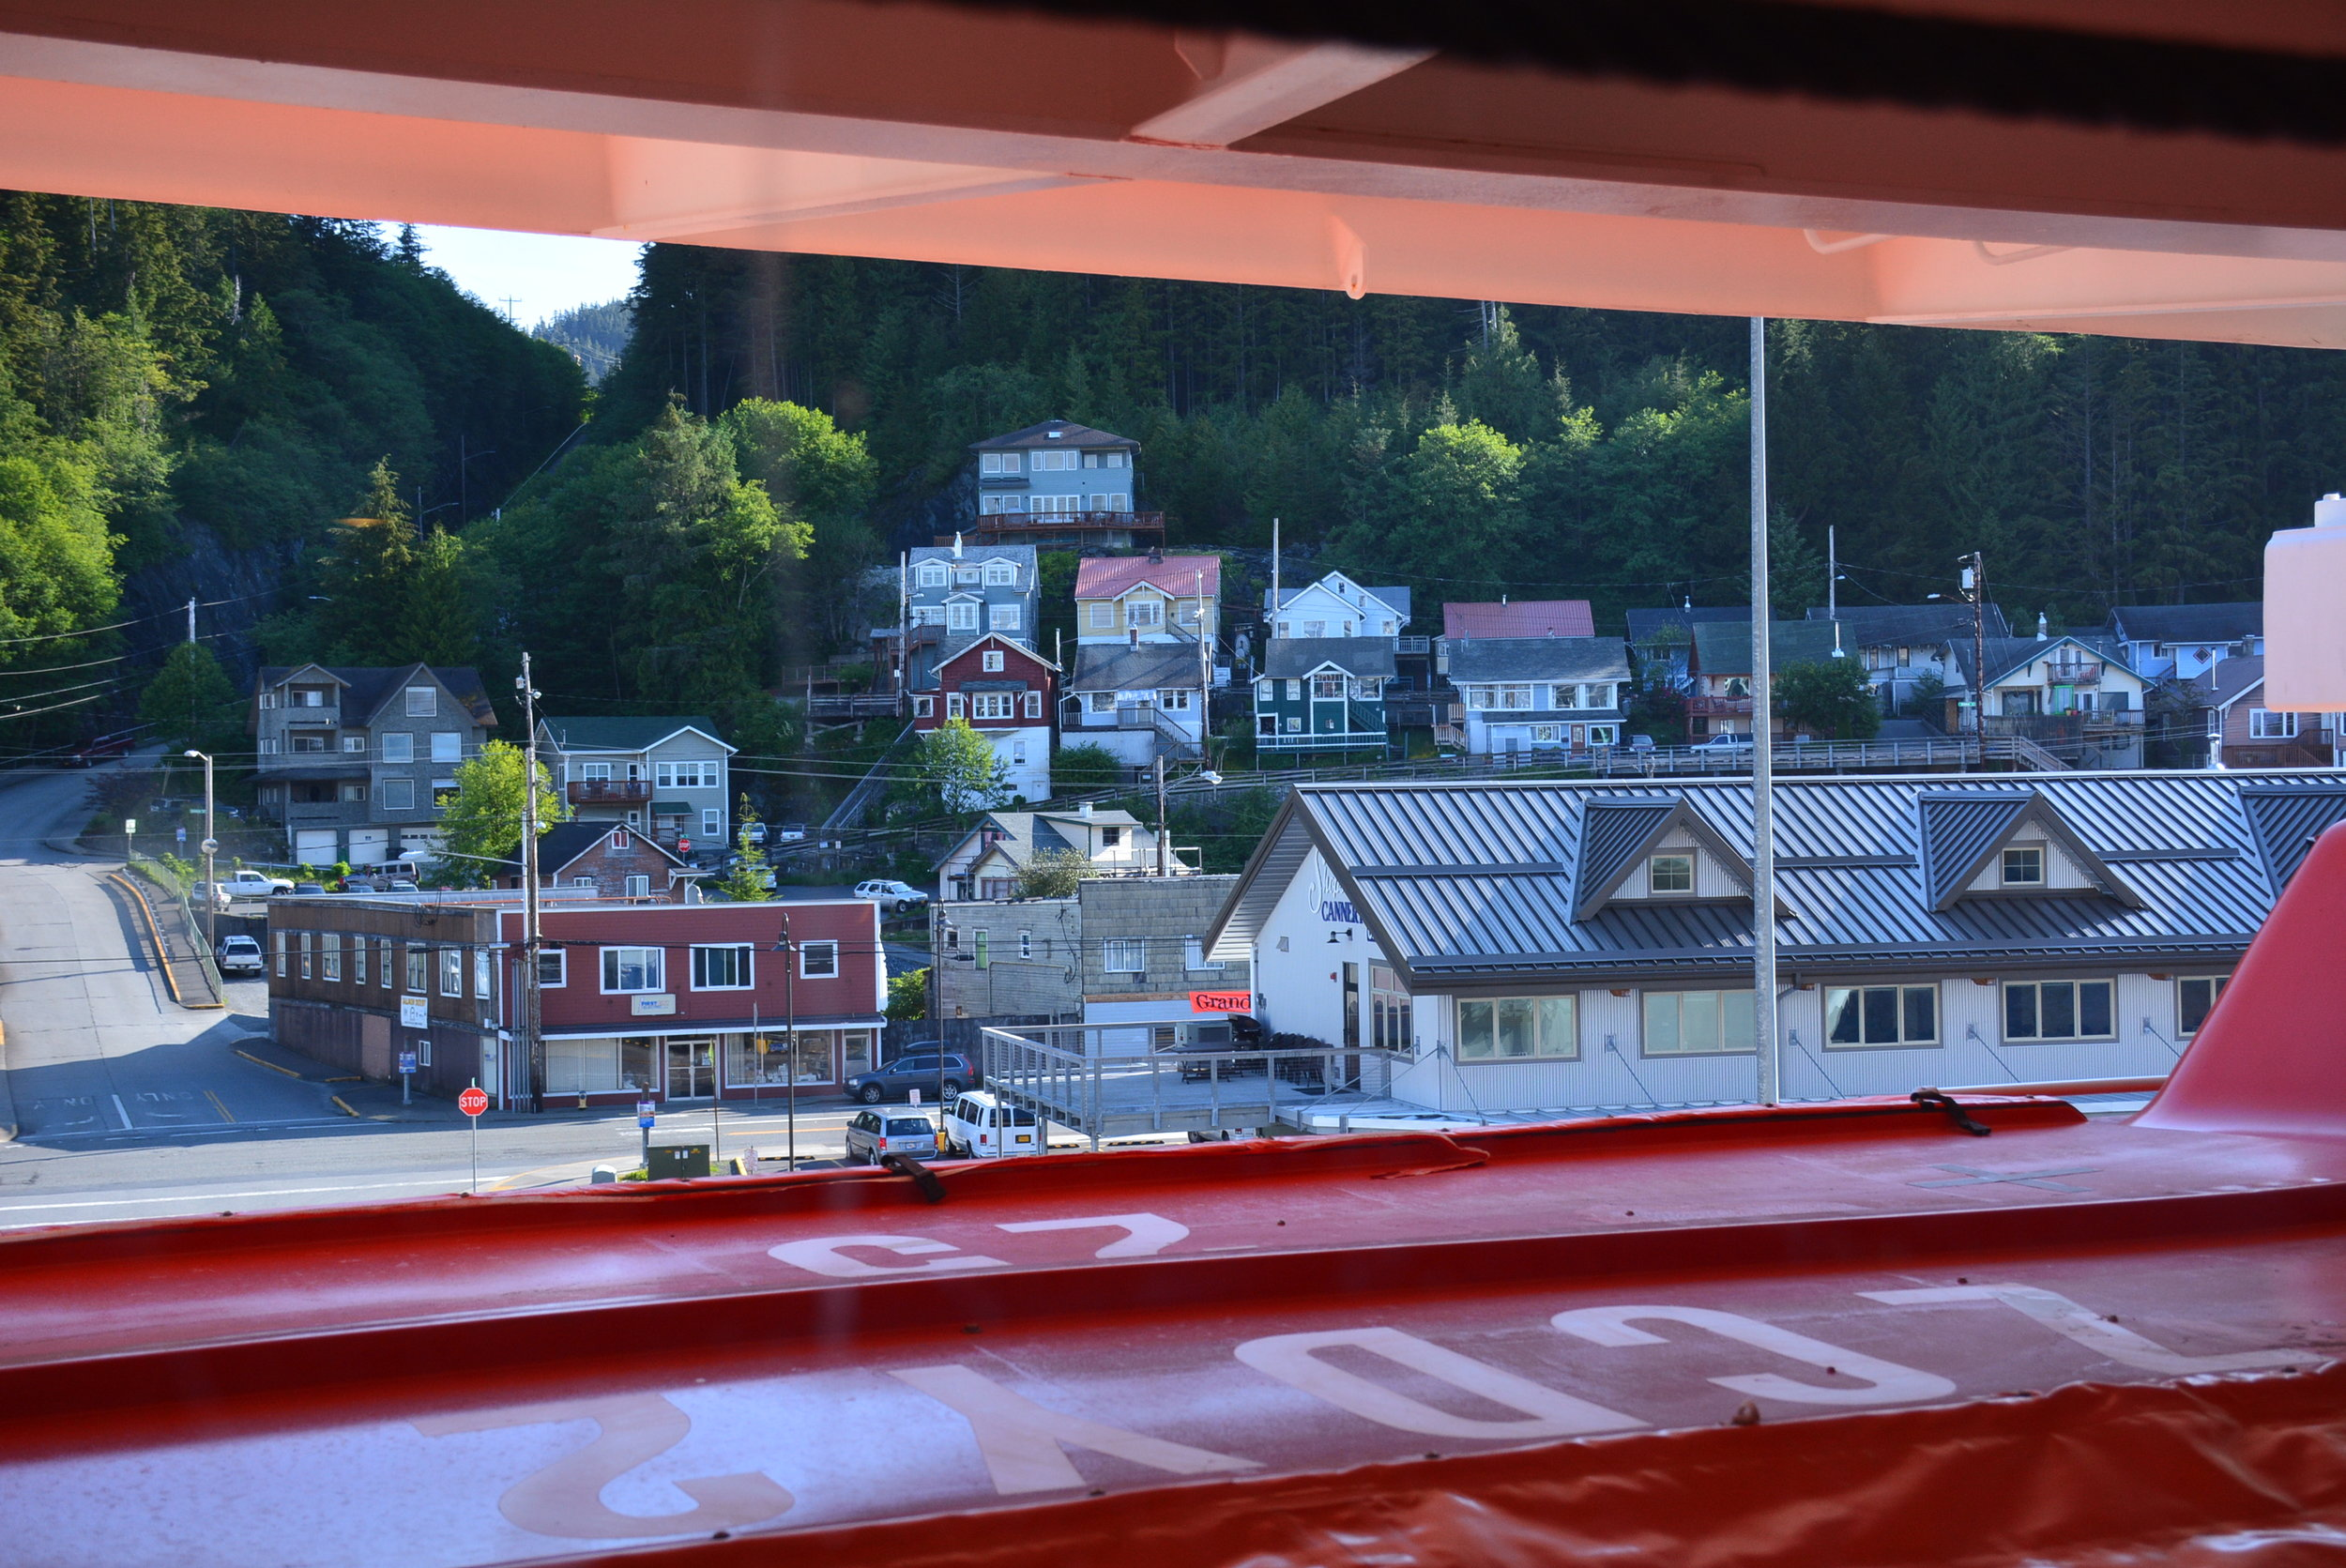 Steamed all night, awoke in Ketchikan